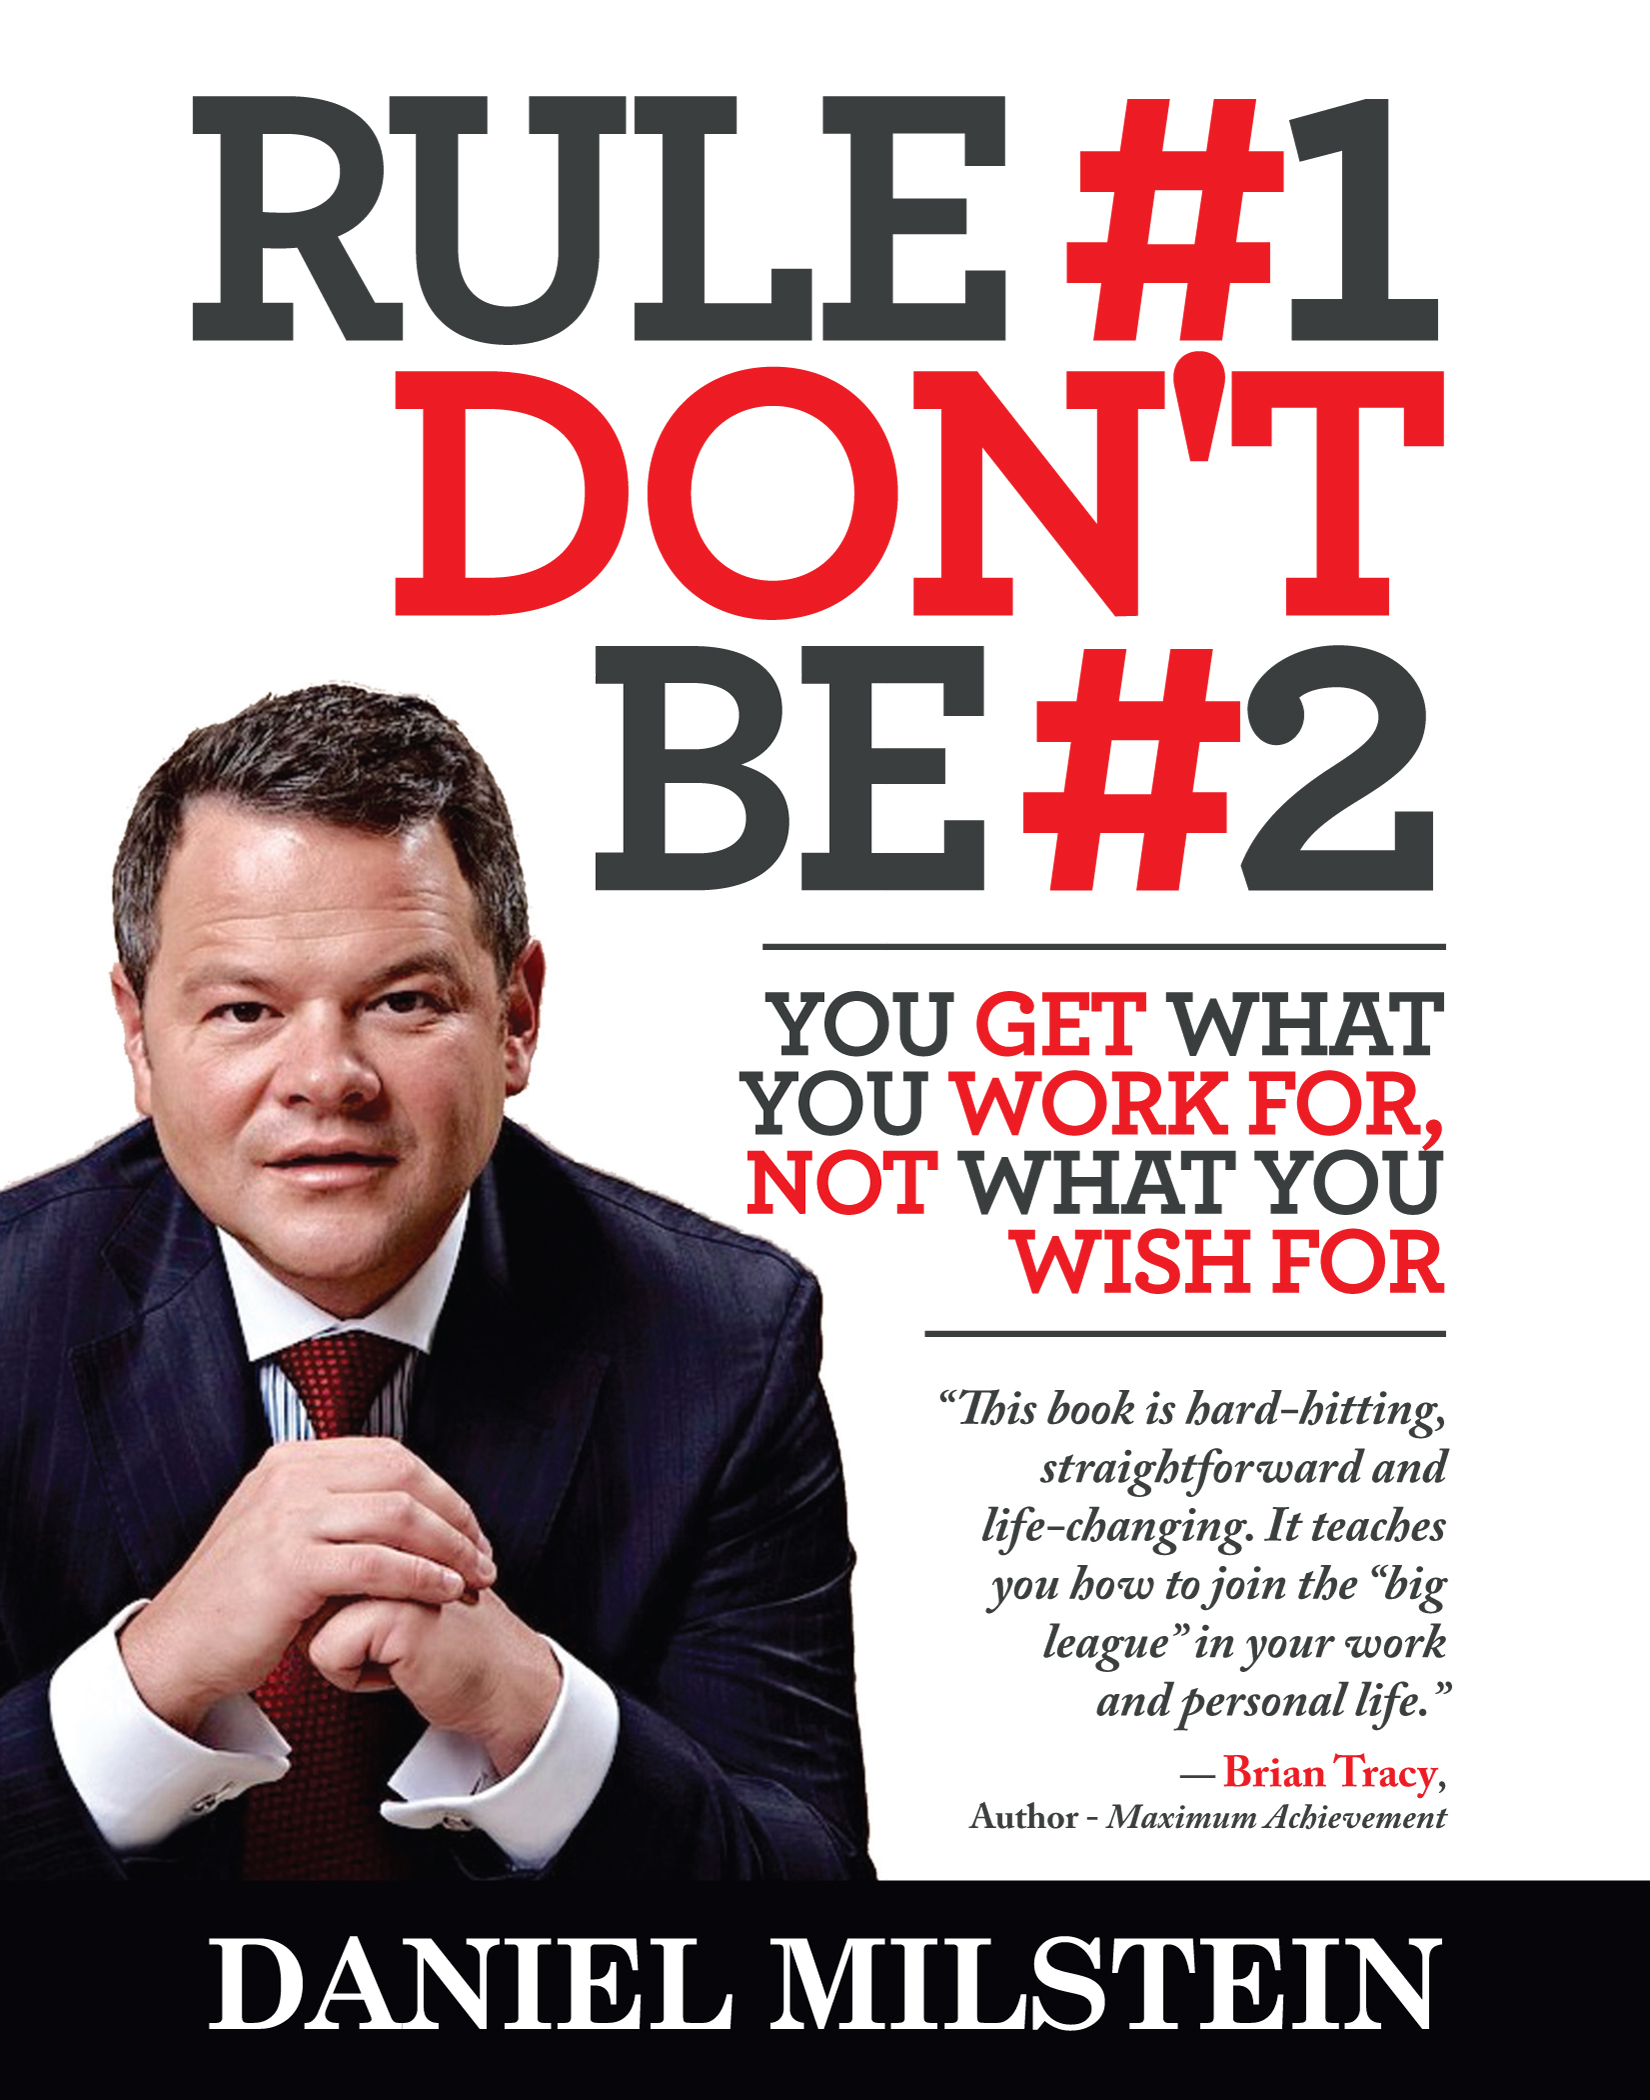 Rule #1 Don't Be #2 - You Get What You Work For Not What You Wish For